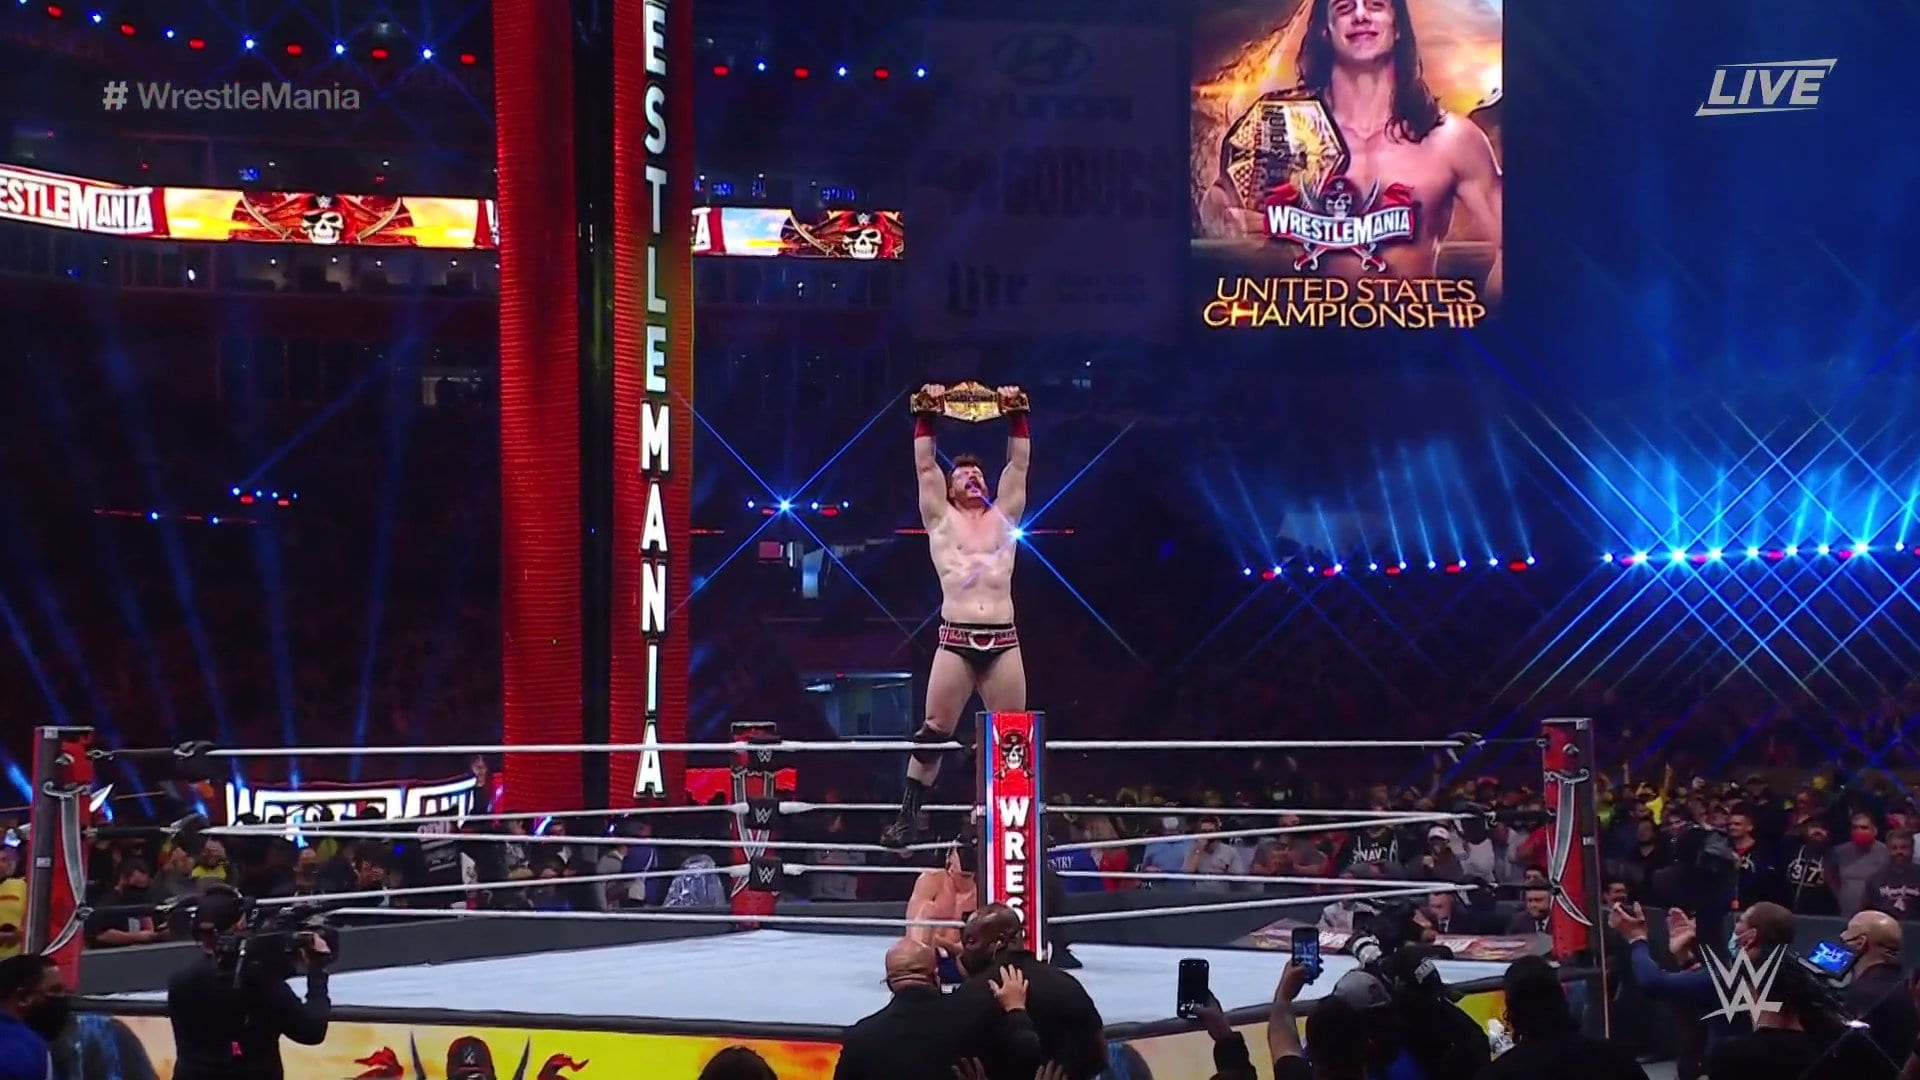 New WWE United States Champion Crowned At WrestleMania 37